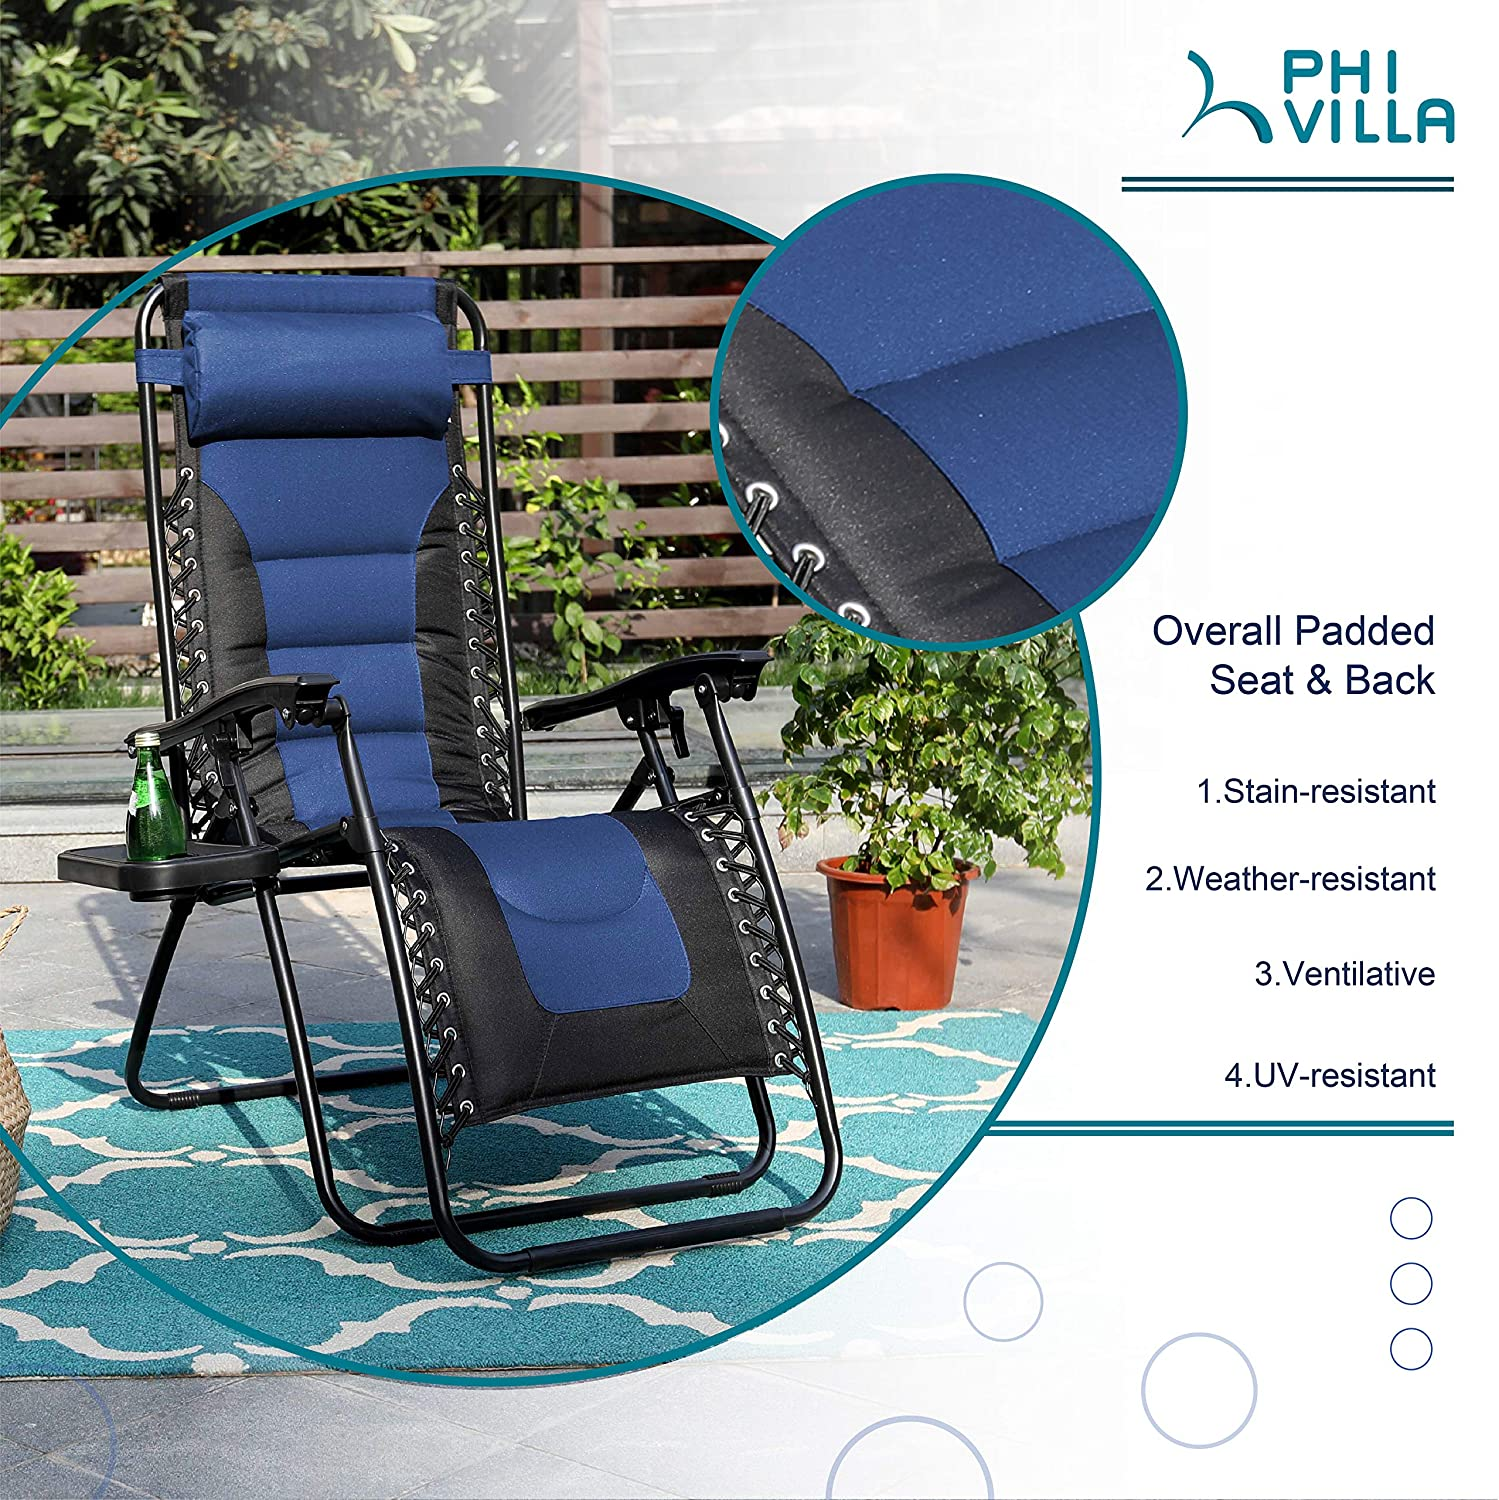 PHI VILLA Zero Gravity Chair Padded Recliner Adjustable Lounge Chair with Free Cup Holder Blue